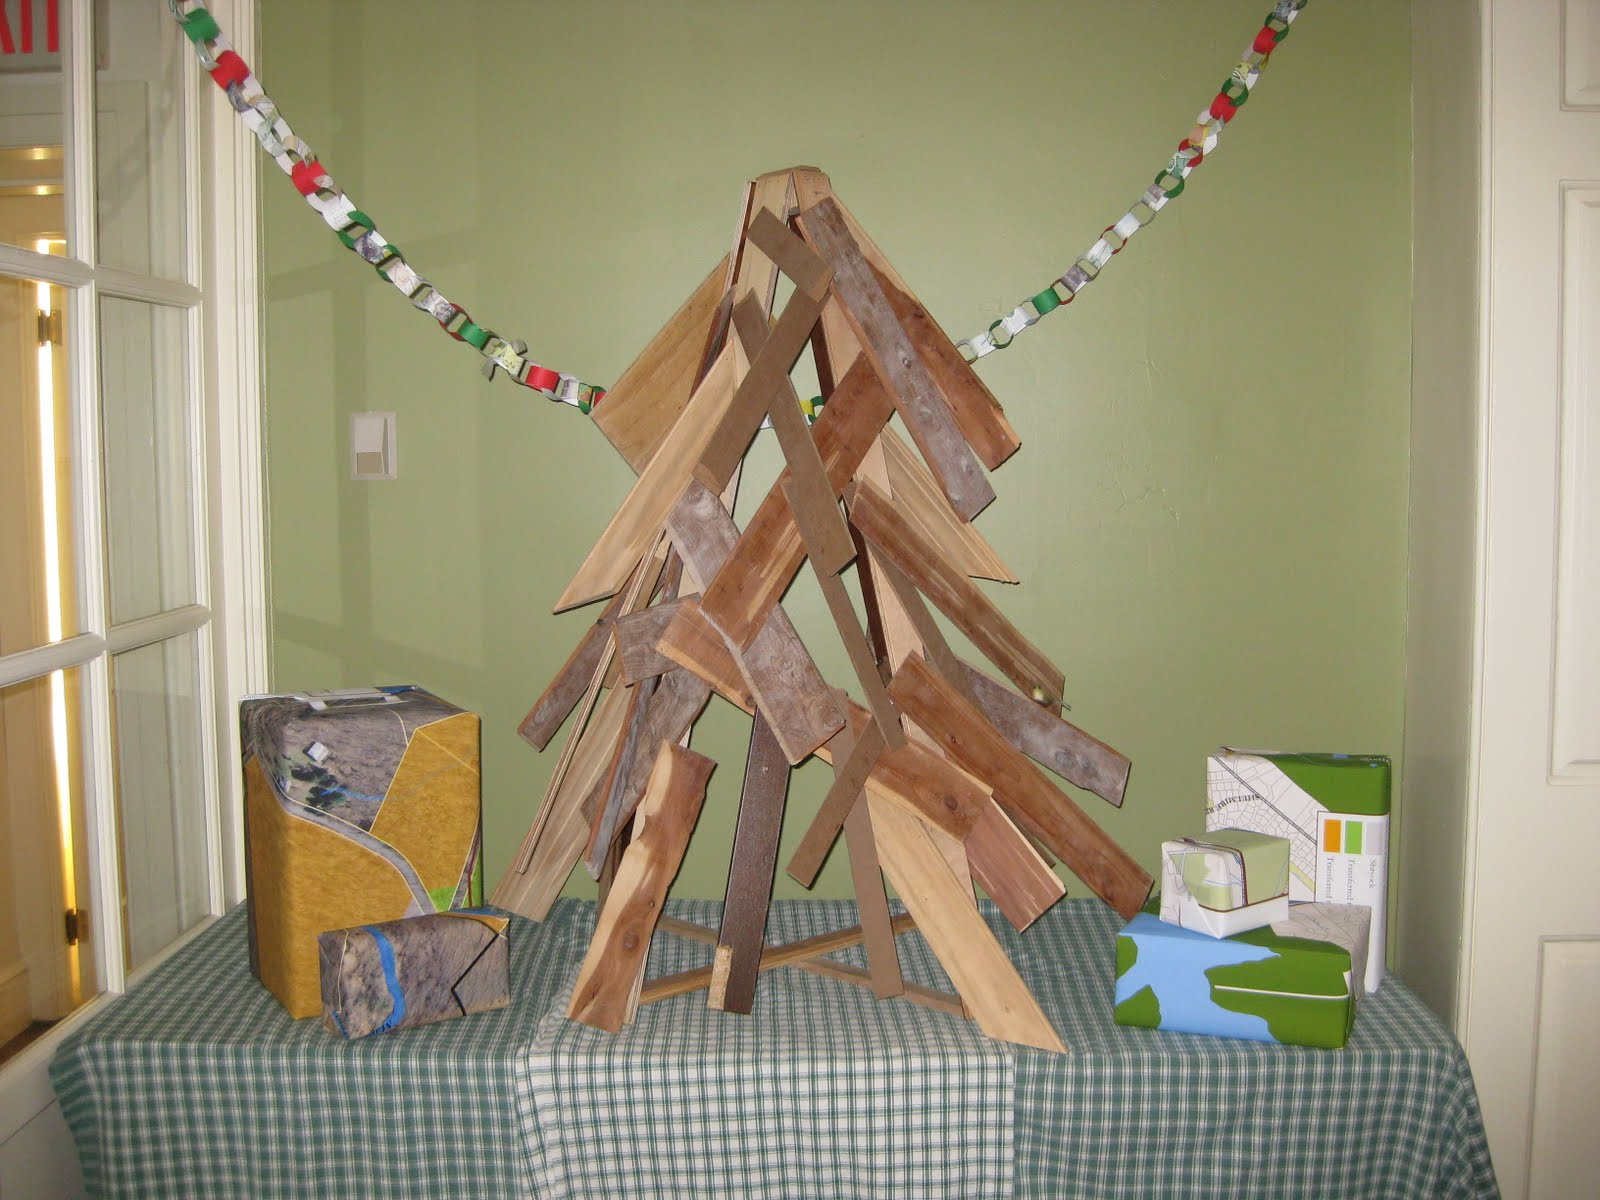 Our Scrap Wood Christmas Tree Was Inspired By This Amazing Tree That